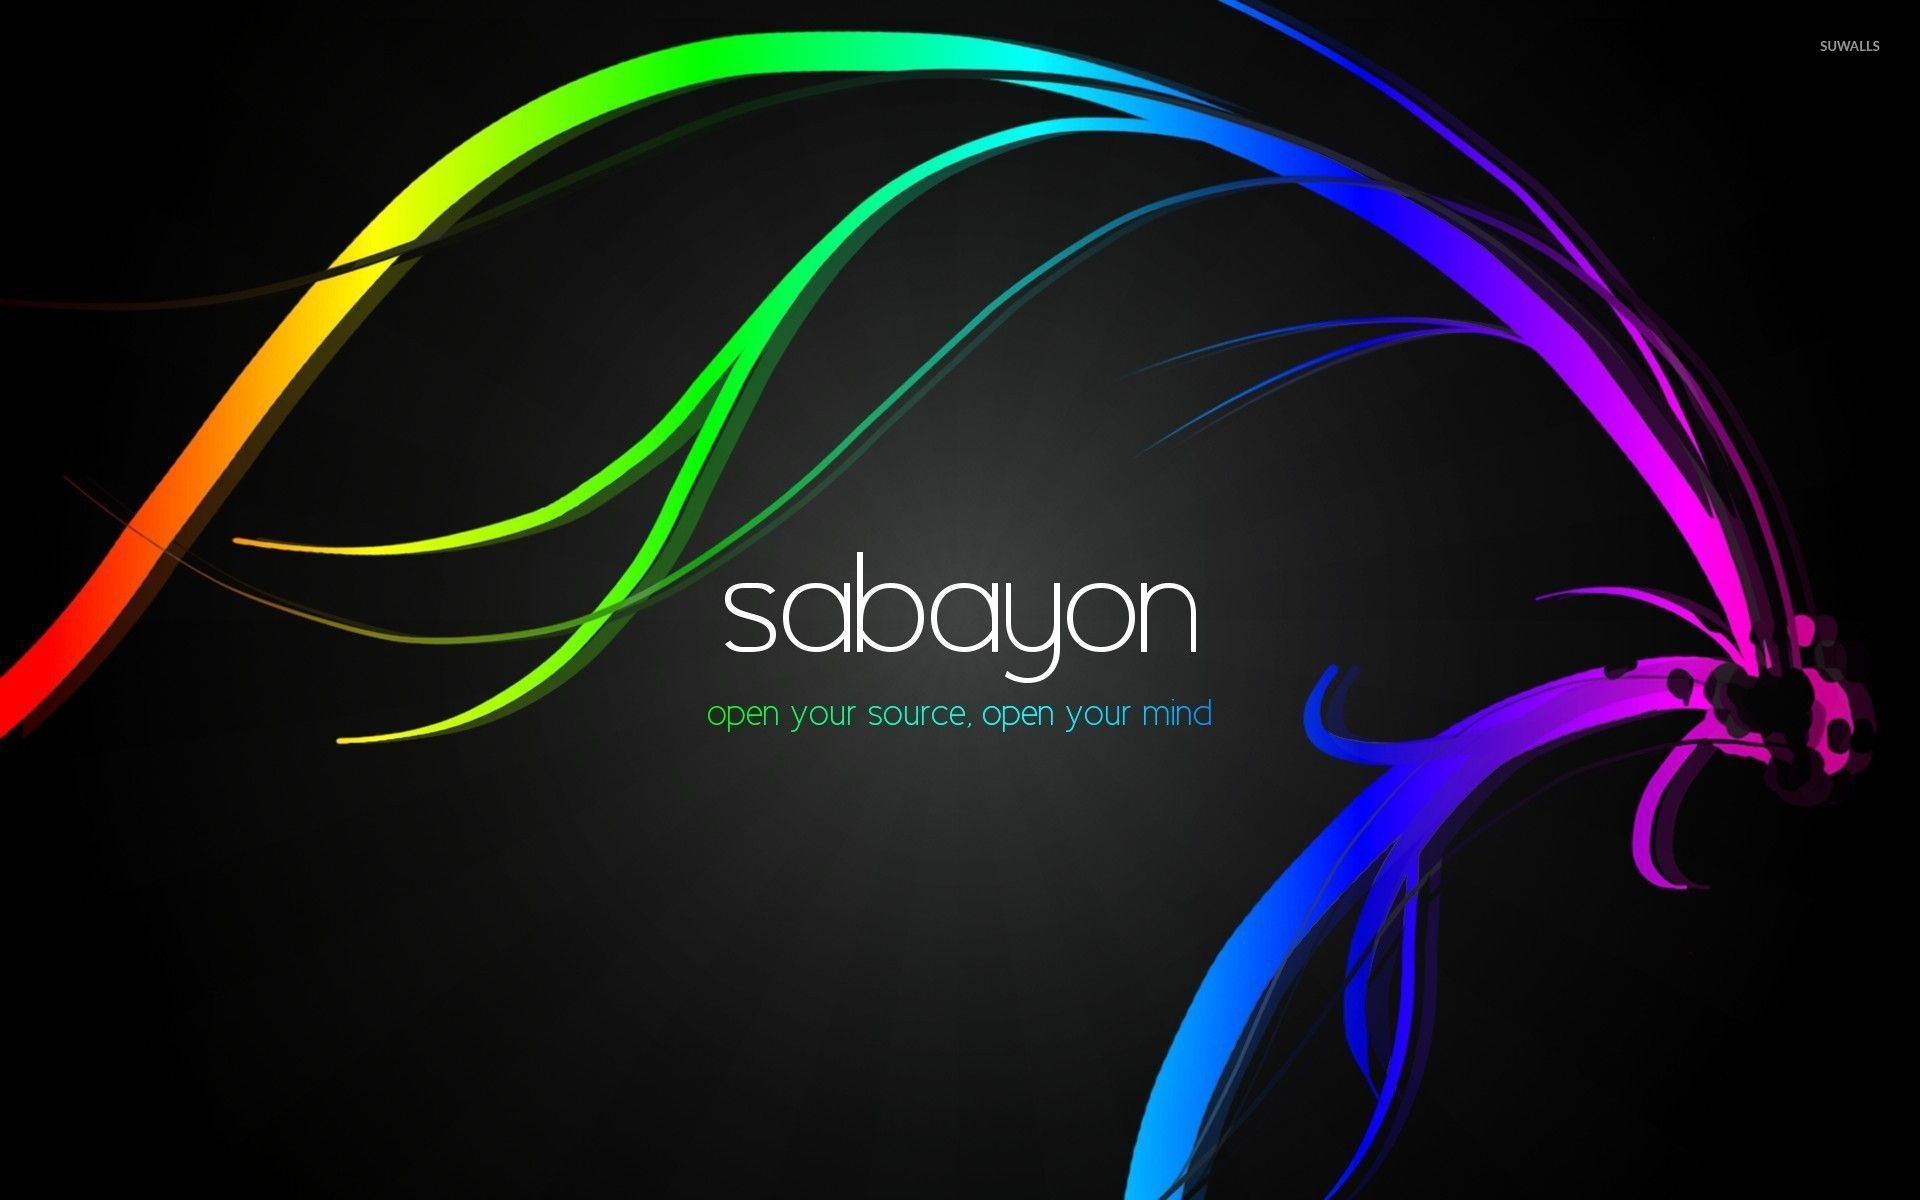 Sabayon wallpaper - Computer wallpapers - #10952